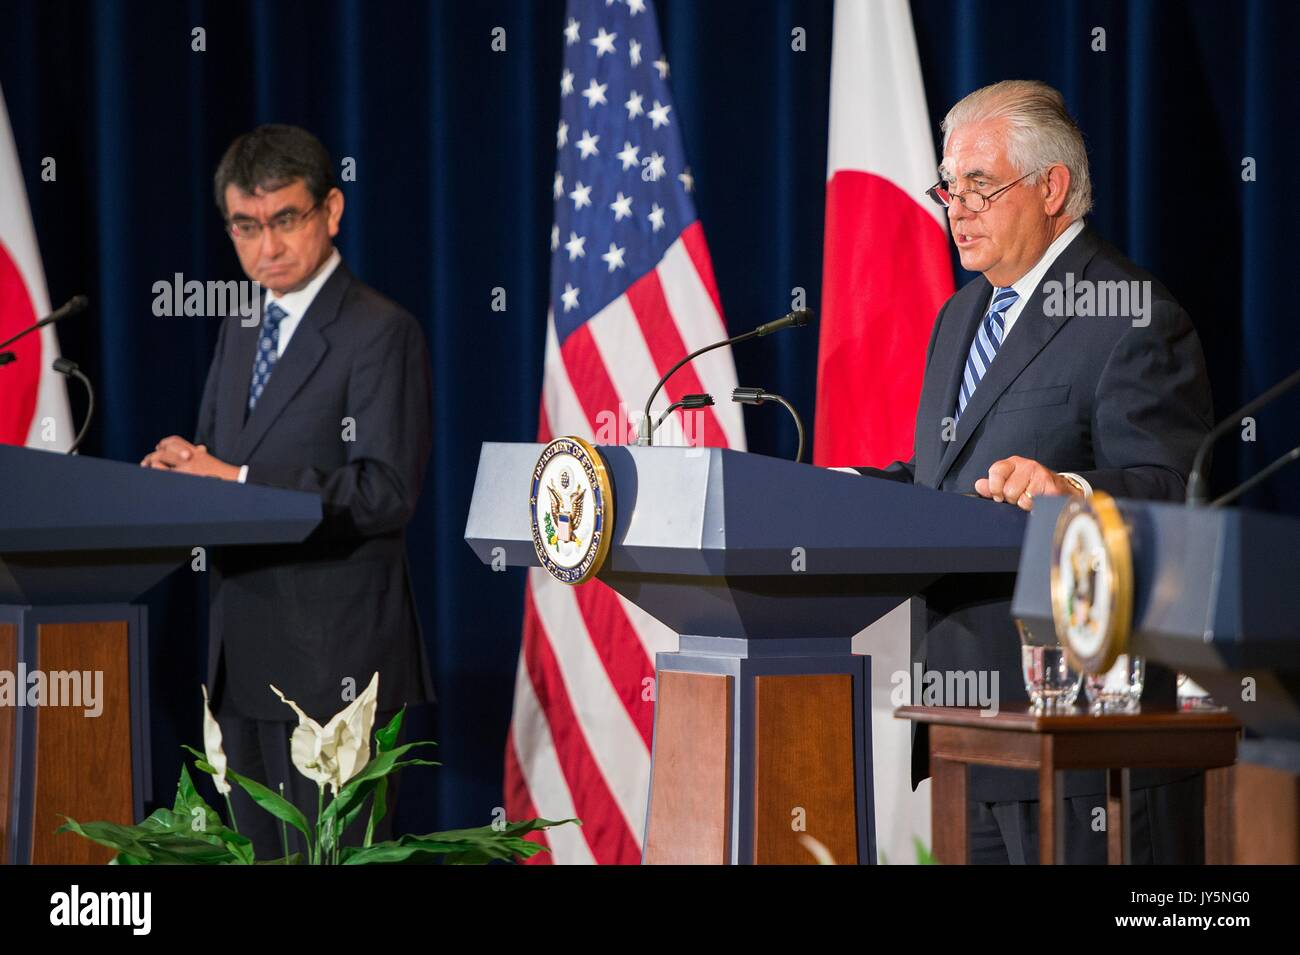 U.S. Secretary of State Rex Tillerson during a joint press conference with Japanese Foreign Minister Taro Kono following Stock Photo